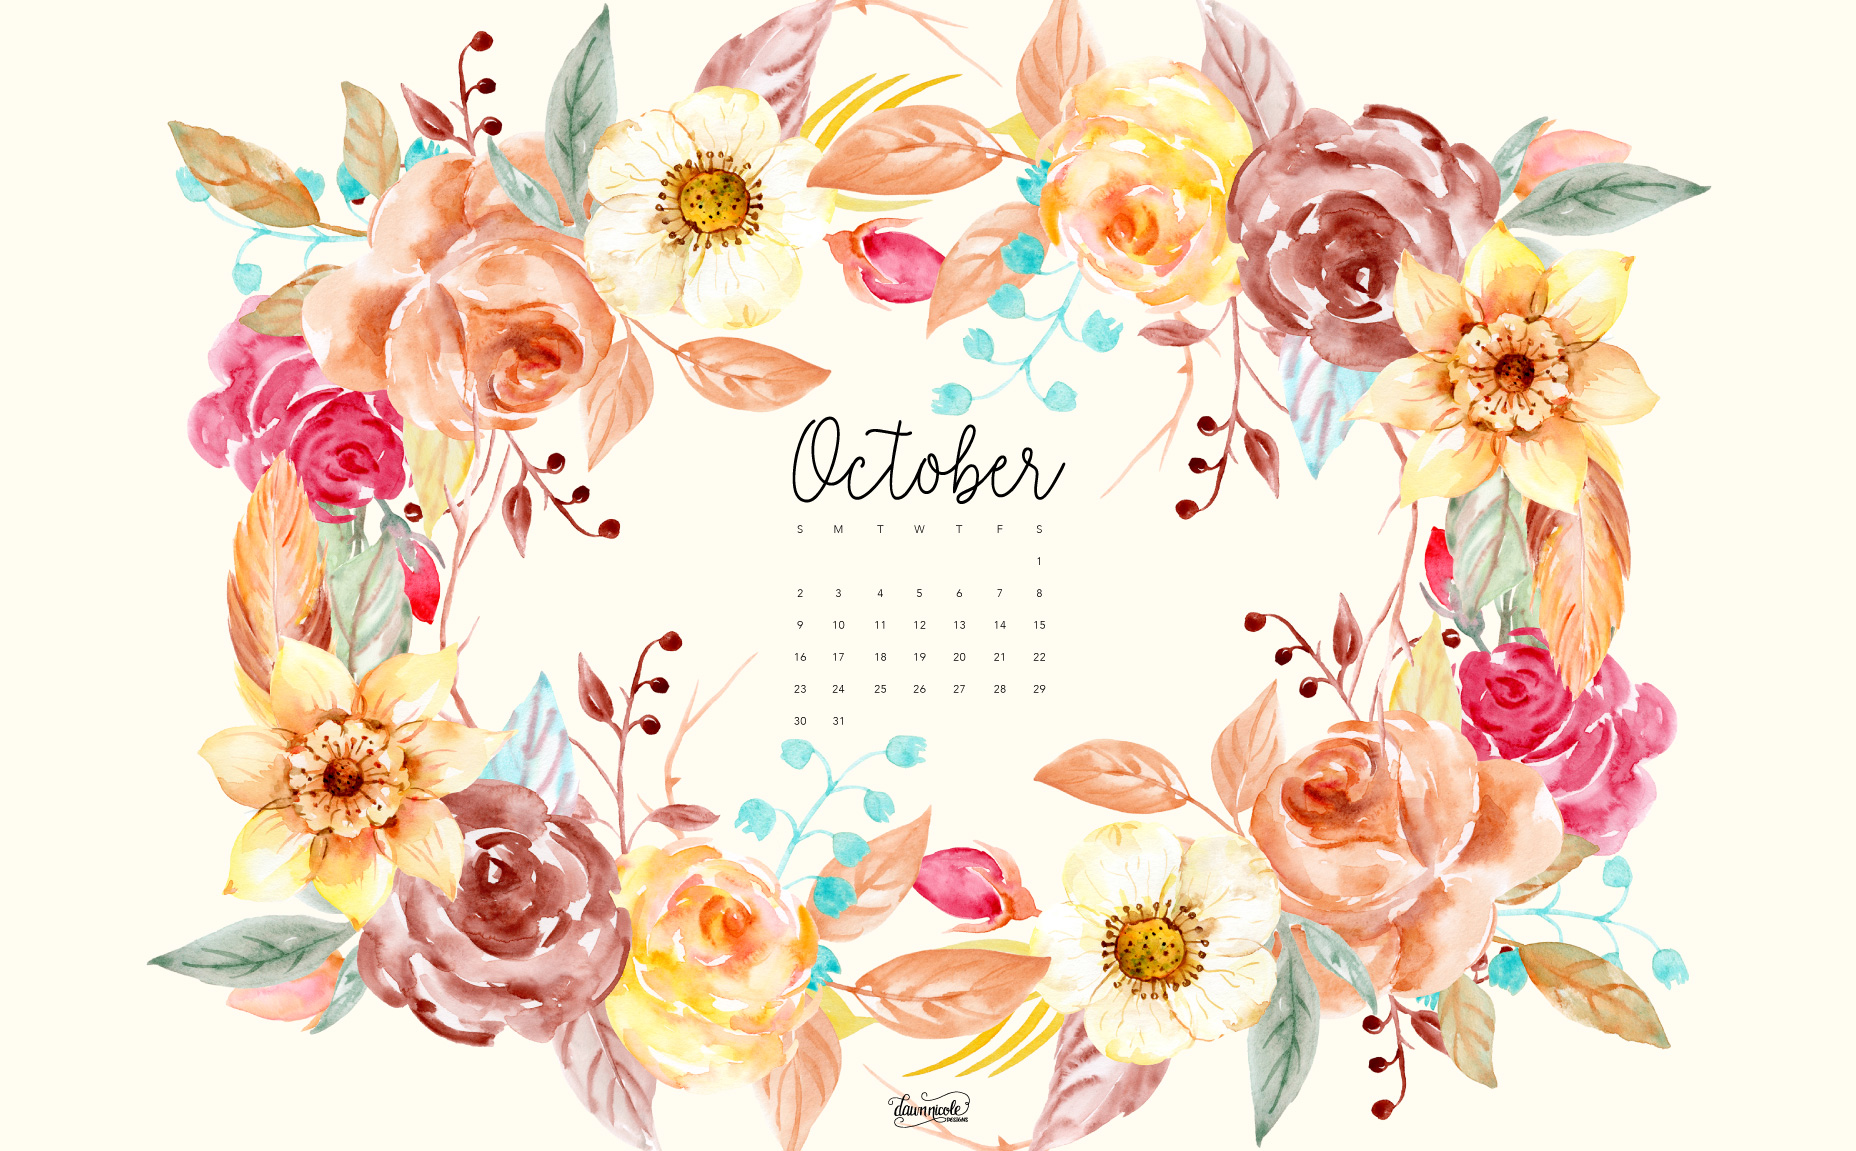 October 1938 calendar clipart image freeuse library October desktop clipart - ClipartFox image freeuse library